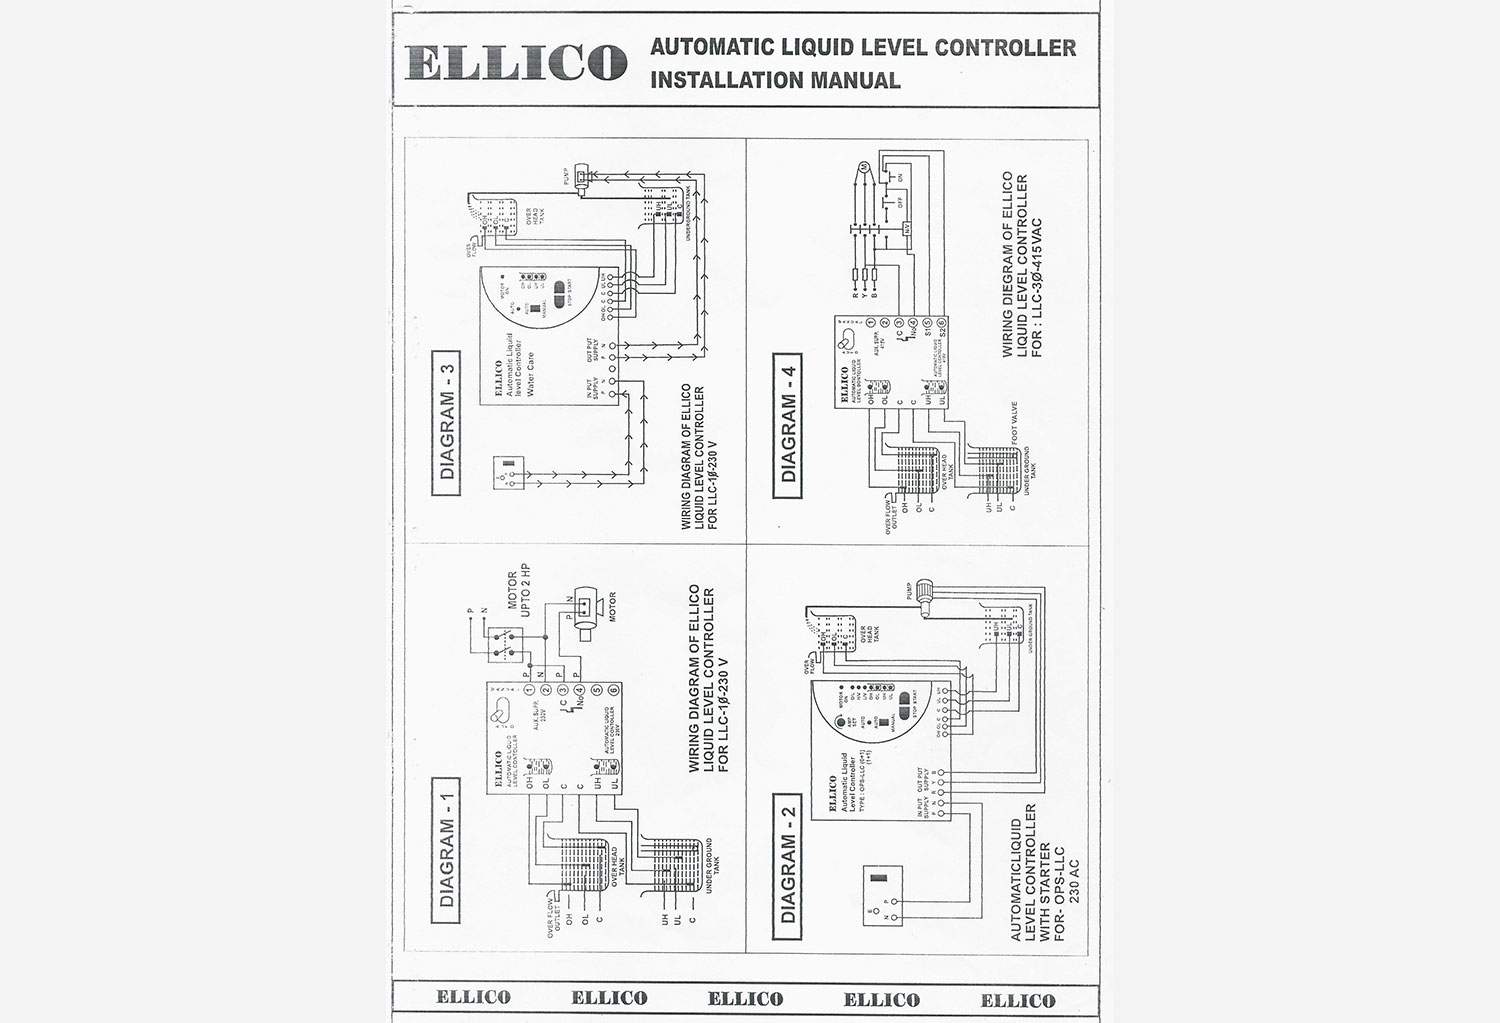 Circuit Diagram Of Automatic Water Level Controller | Est Llc 1 Automatic Water Level Controller Manufacturer In Ahmedabad